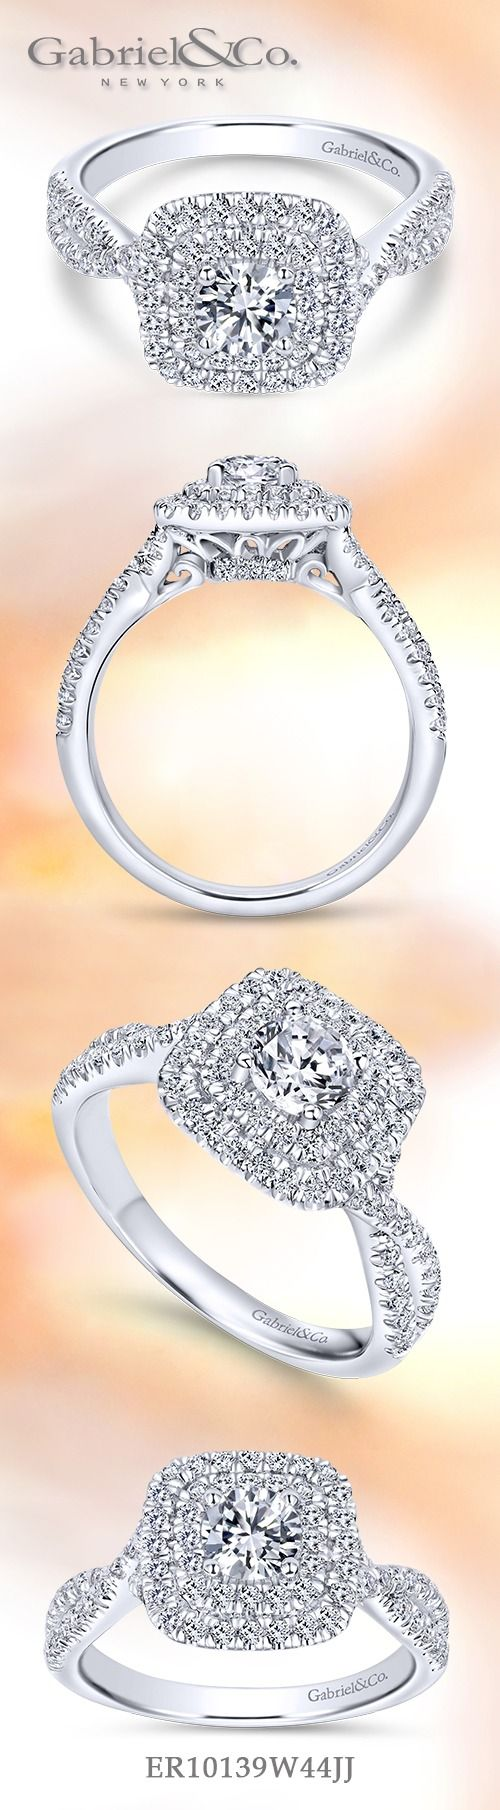 Gabriel & Co. - Voted #1 Most Preferred Fine Jewelry and Bridal Brand.  Meet Carmen - A round cut center stone double Halo Engagement Ring with a pair of glittering softened square halos. Overlapping strands of pave diamonds form the graceful band.